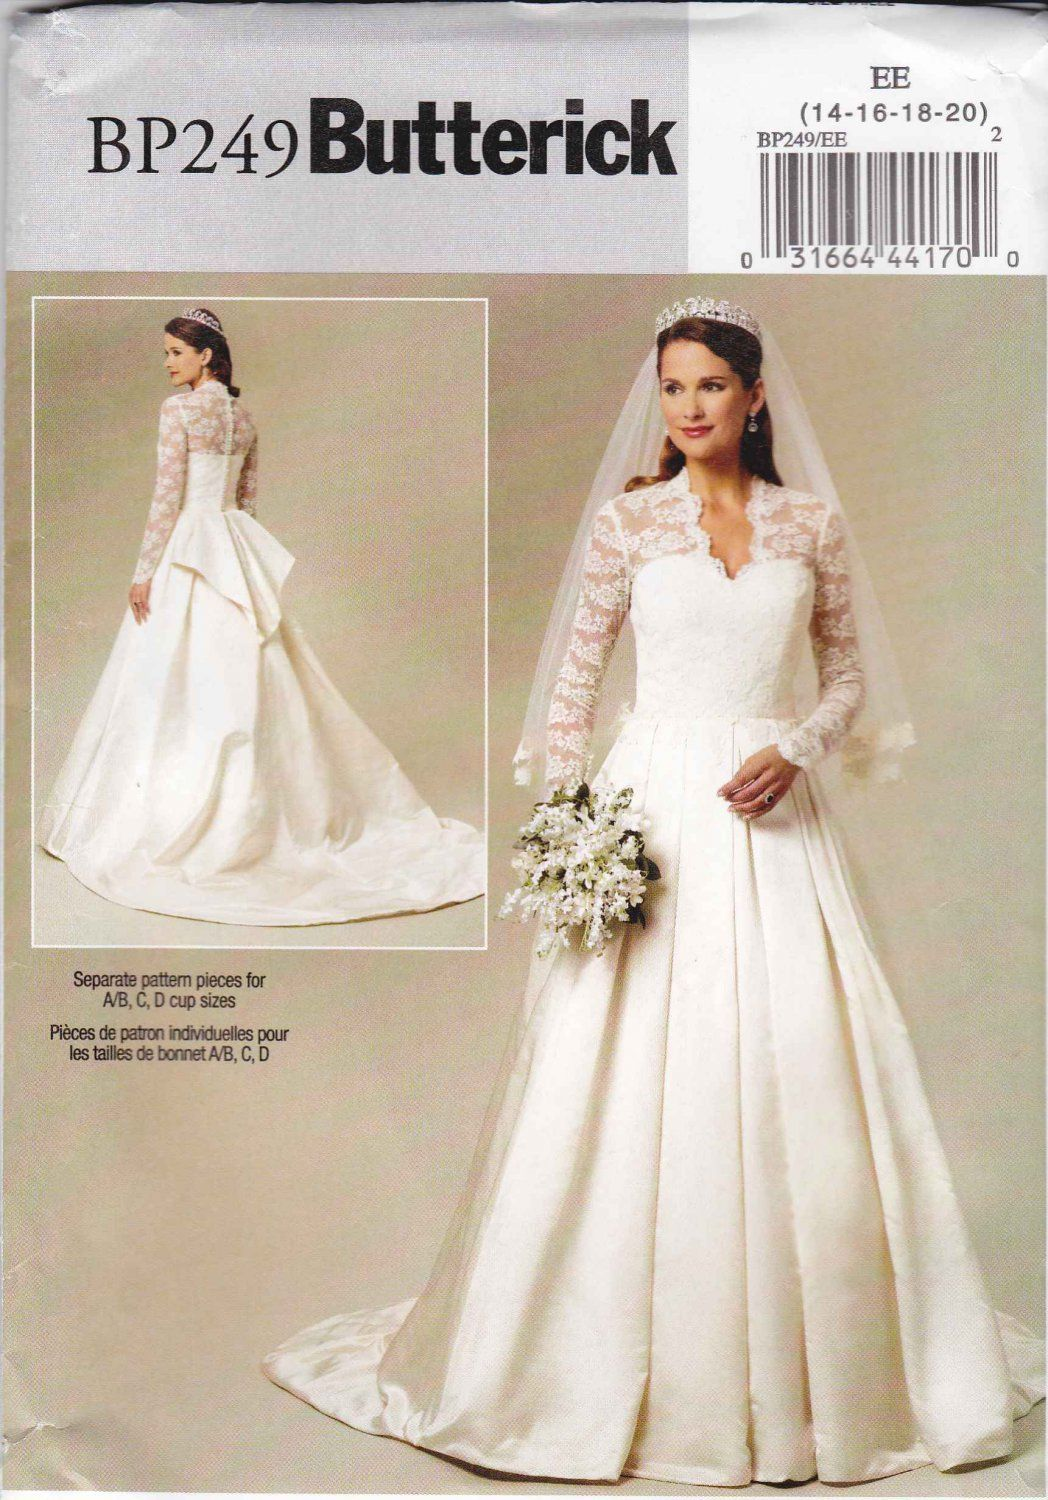 Butterick Sewing Pattern 5731 B5731 Misses Size 6 14 Royal Wedding